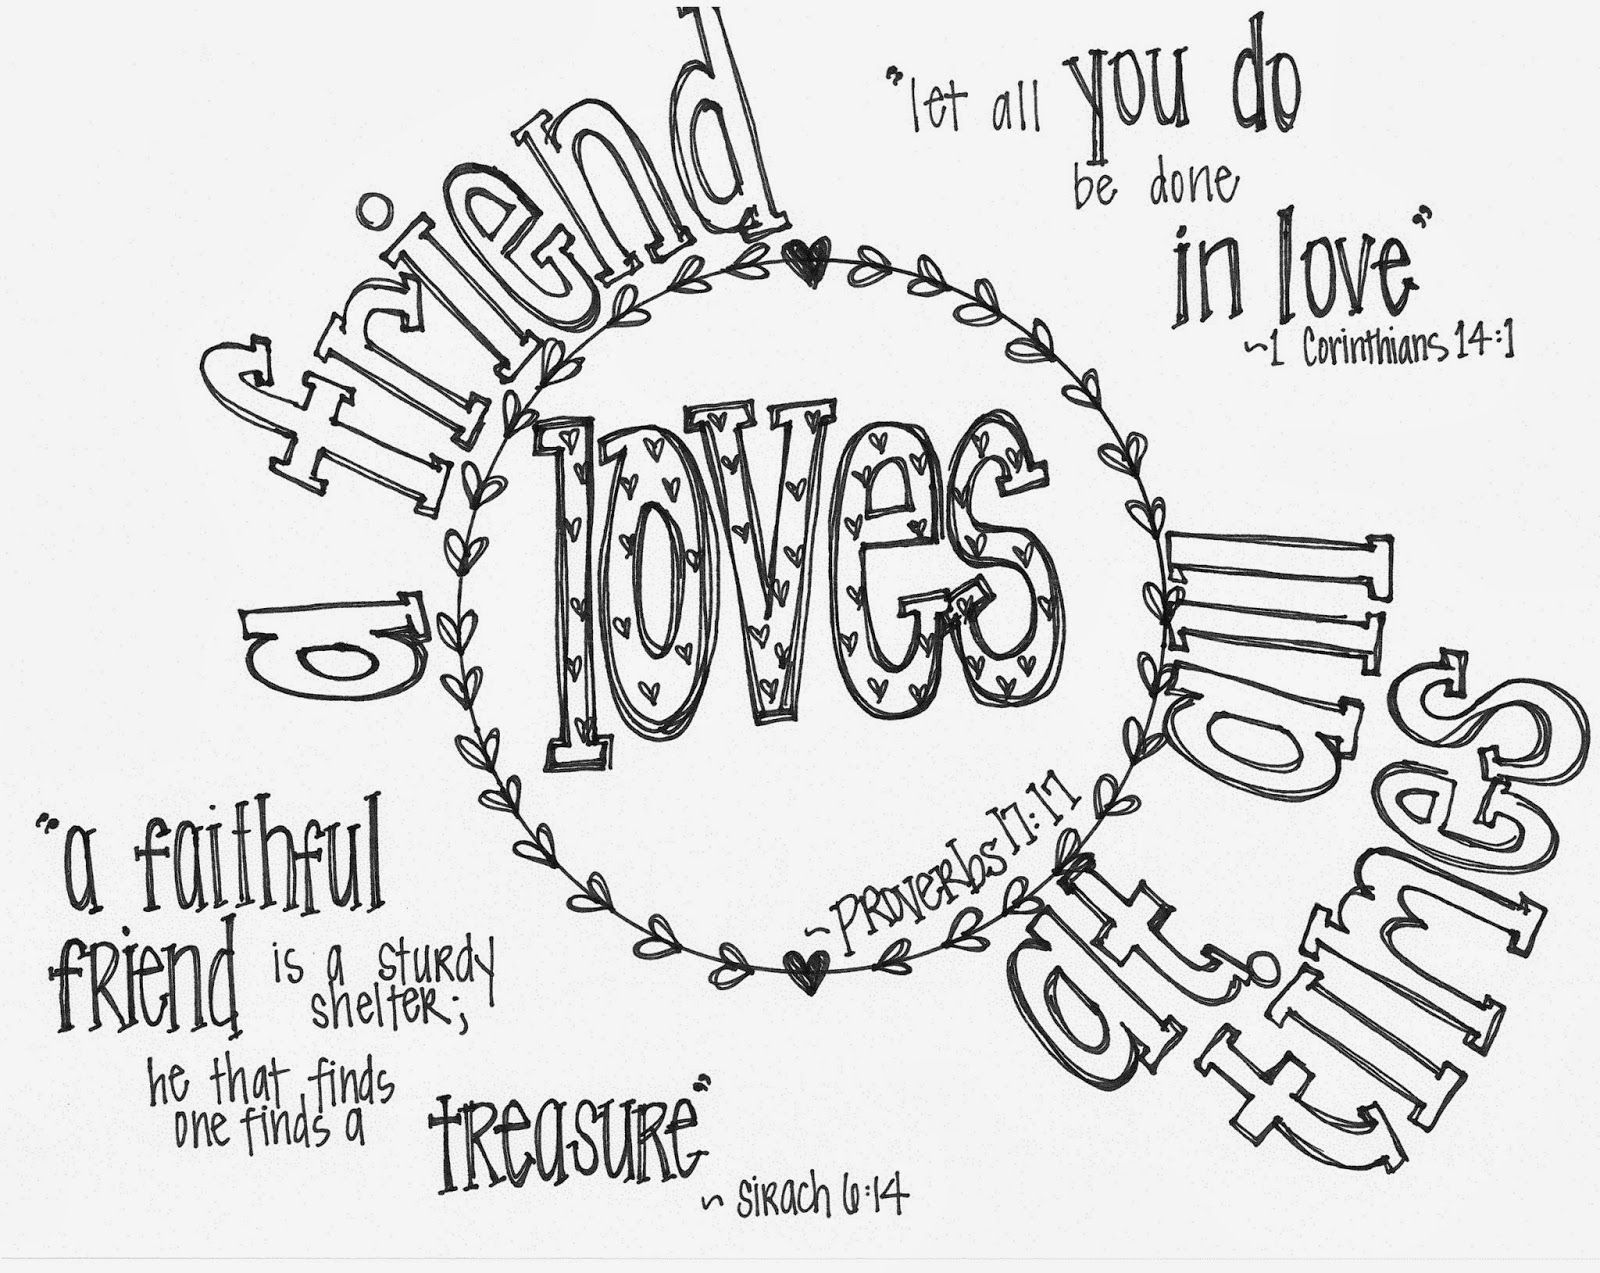 Printable coloring pages about the bible - Free Printable Valentine S Coloring Page With Bible Verses A Friend Loves At